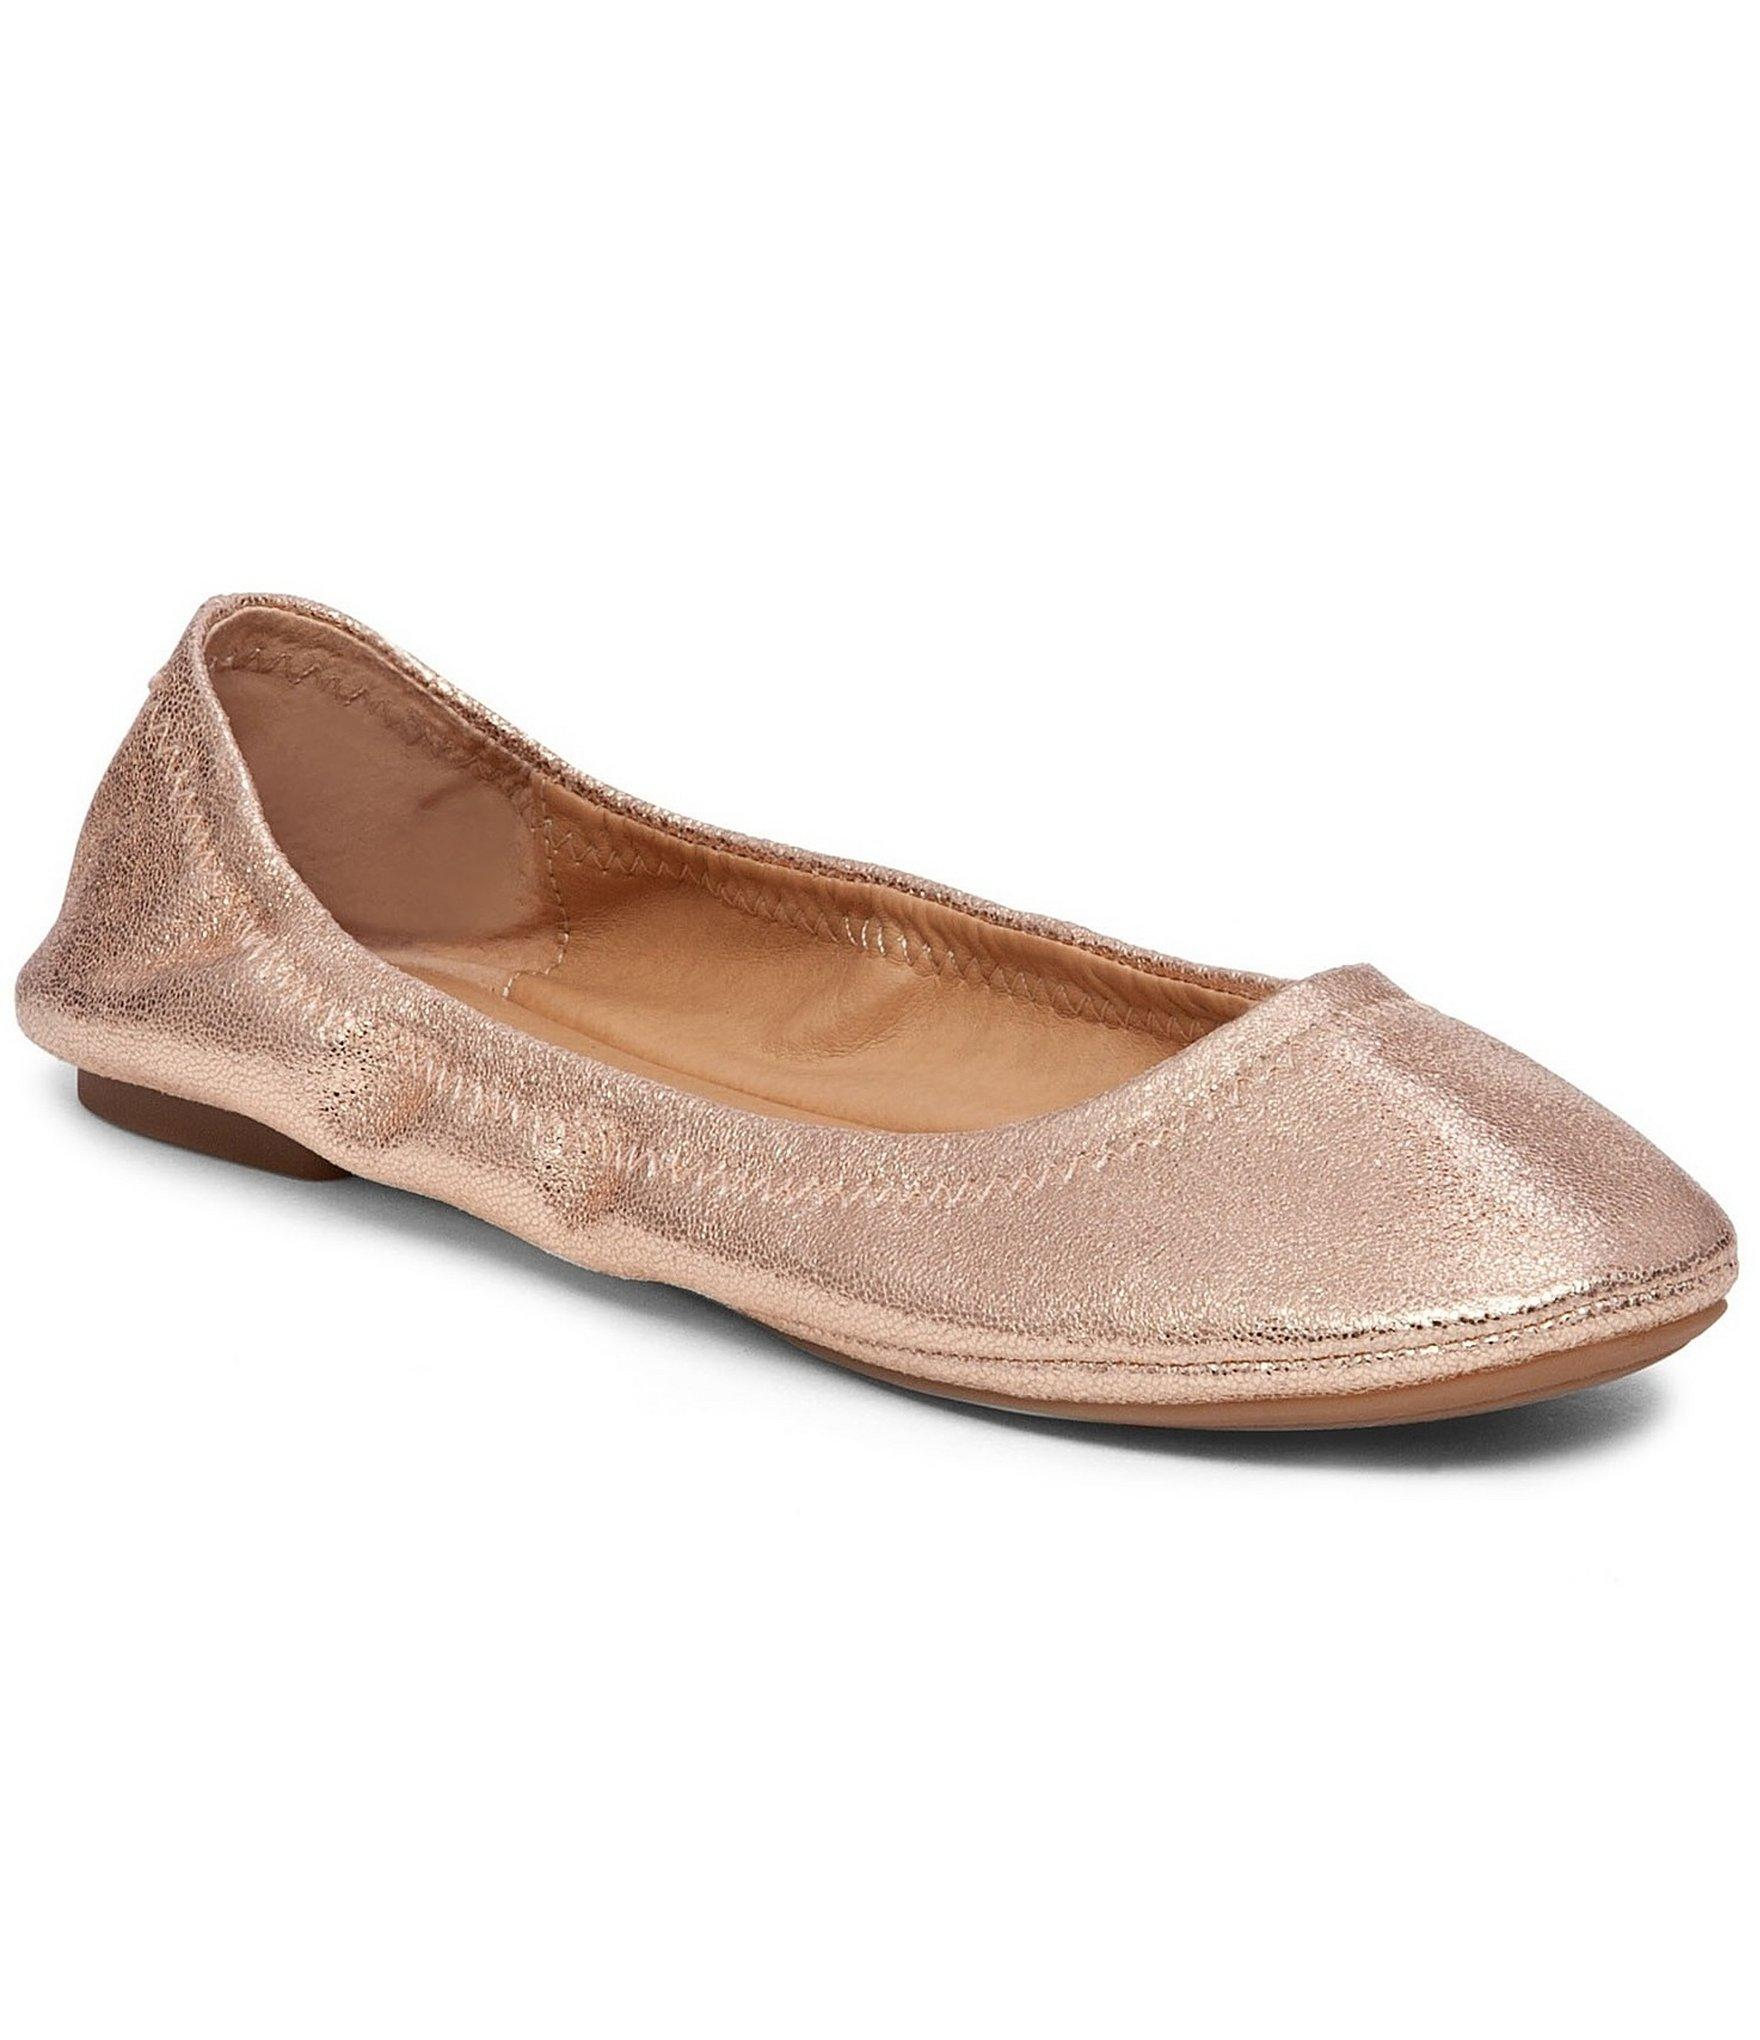 Shop Lucky Brand Emmie Ballet Flats online at hereufilbk.gq With their easy-going styling and boho-chic finishes, Lucky Brand's Emmie flats have the kind of down-to-earth charm you've been looking for. They come in an array of colors and widths that you'll just love/5(K).